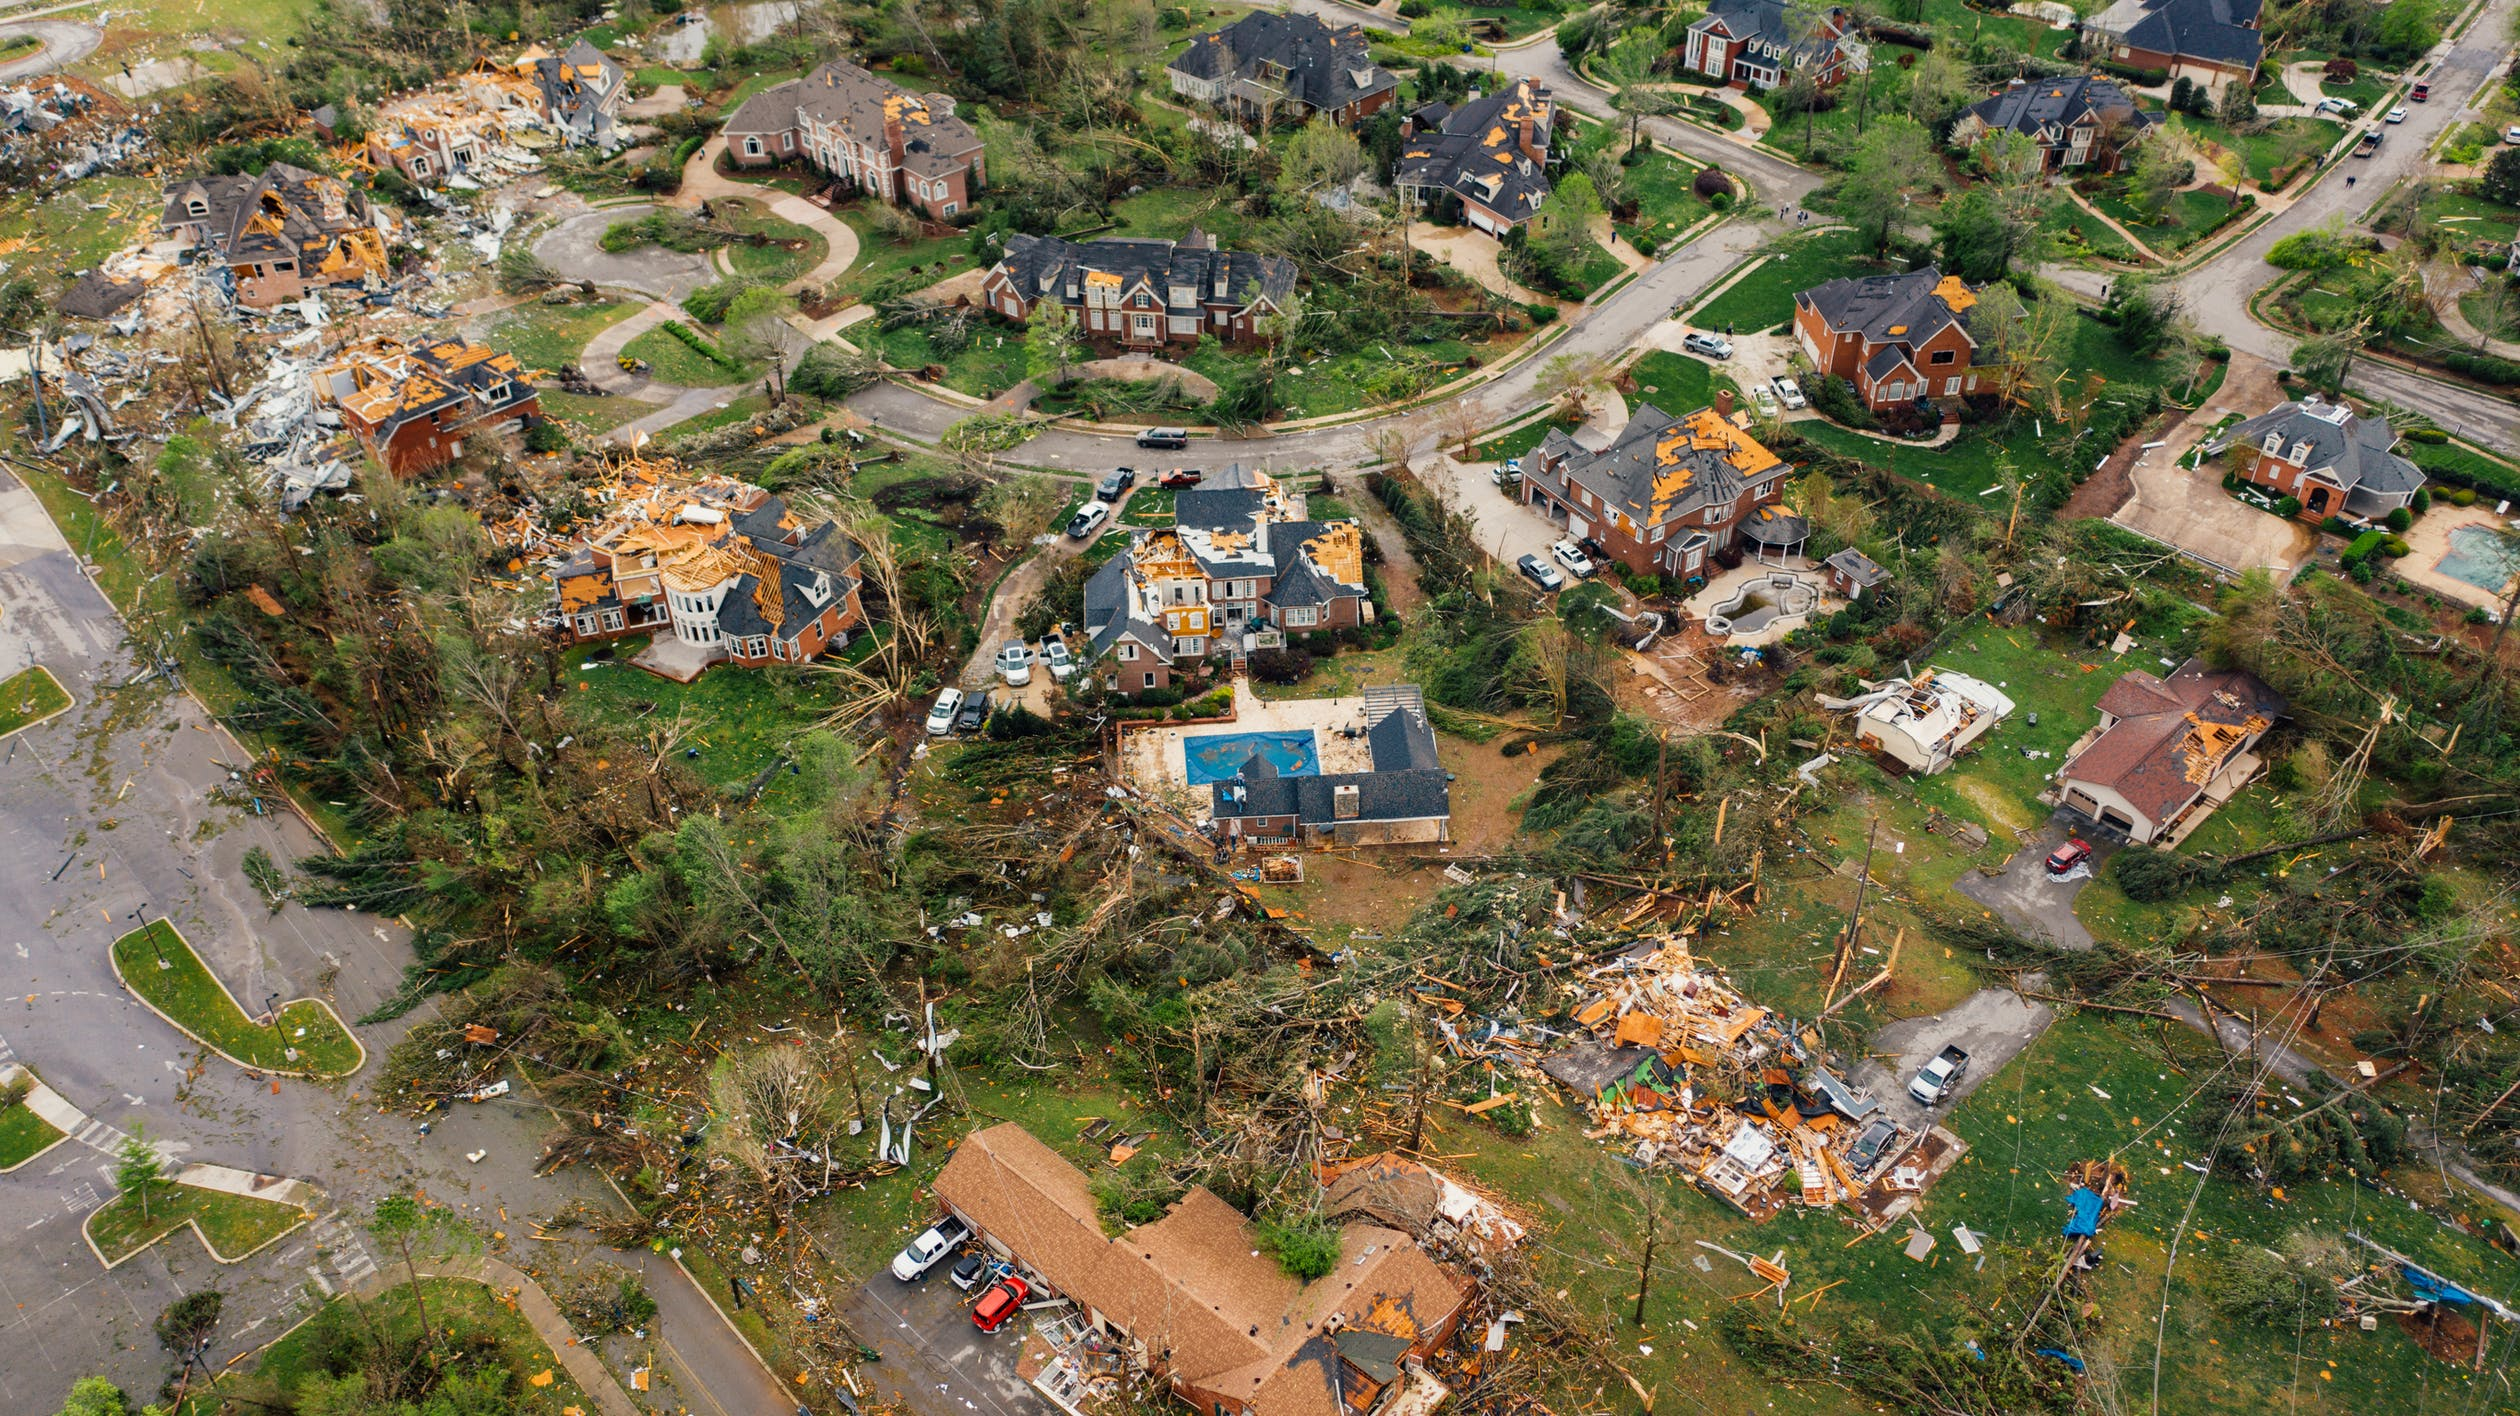 18 Weather Disasters in 2021 Cost US $1 Billion or More Each